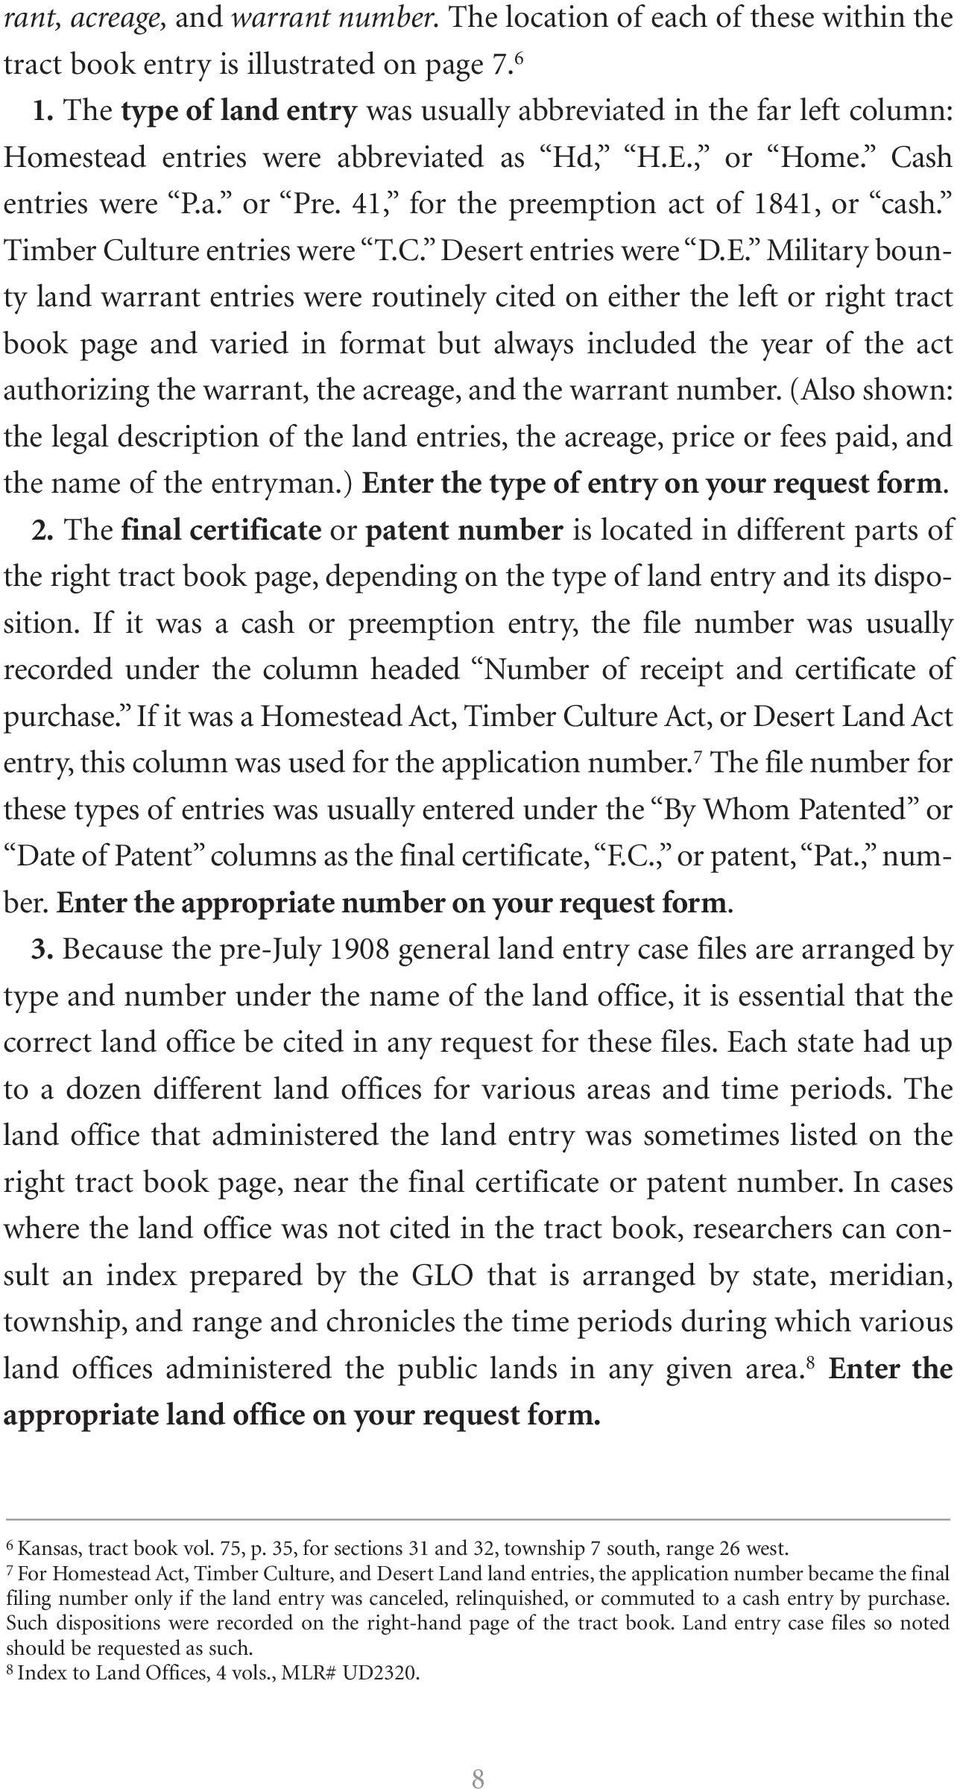 41, for the preemption act of 1841, or cash. Timber Culture entries were T.C. Desert entries were D.E.